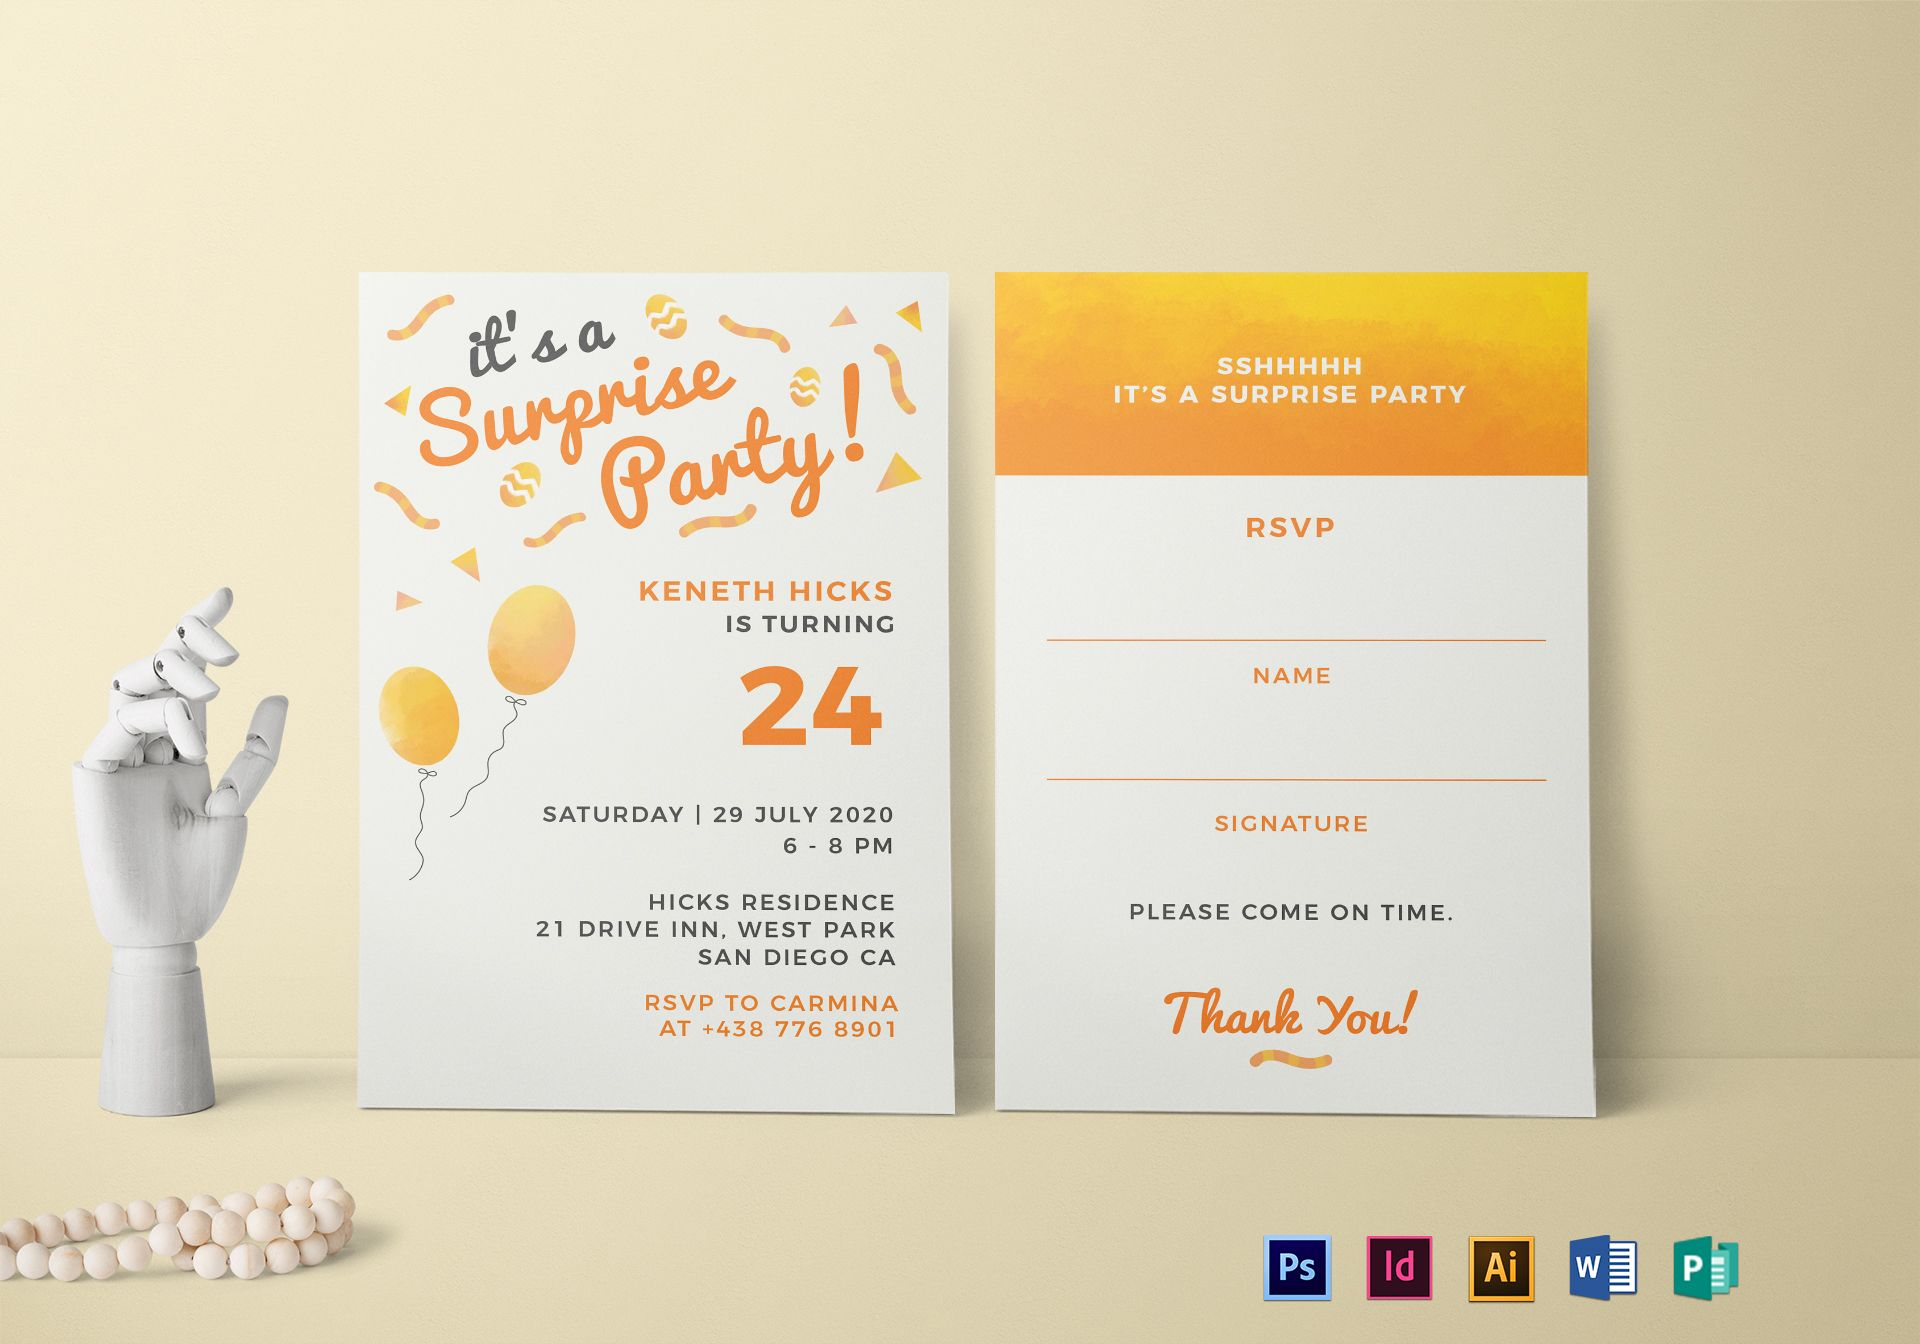 Surprise Birthday Party Invitation Design Template in PSD, Word ...